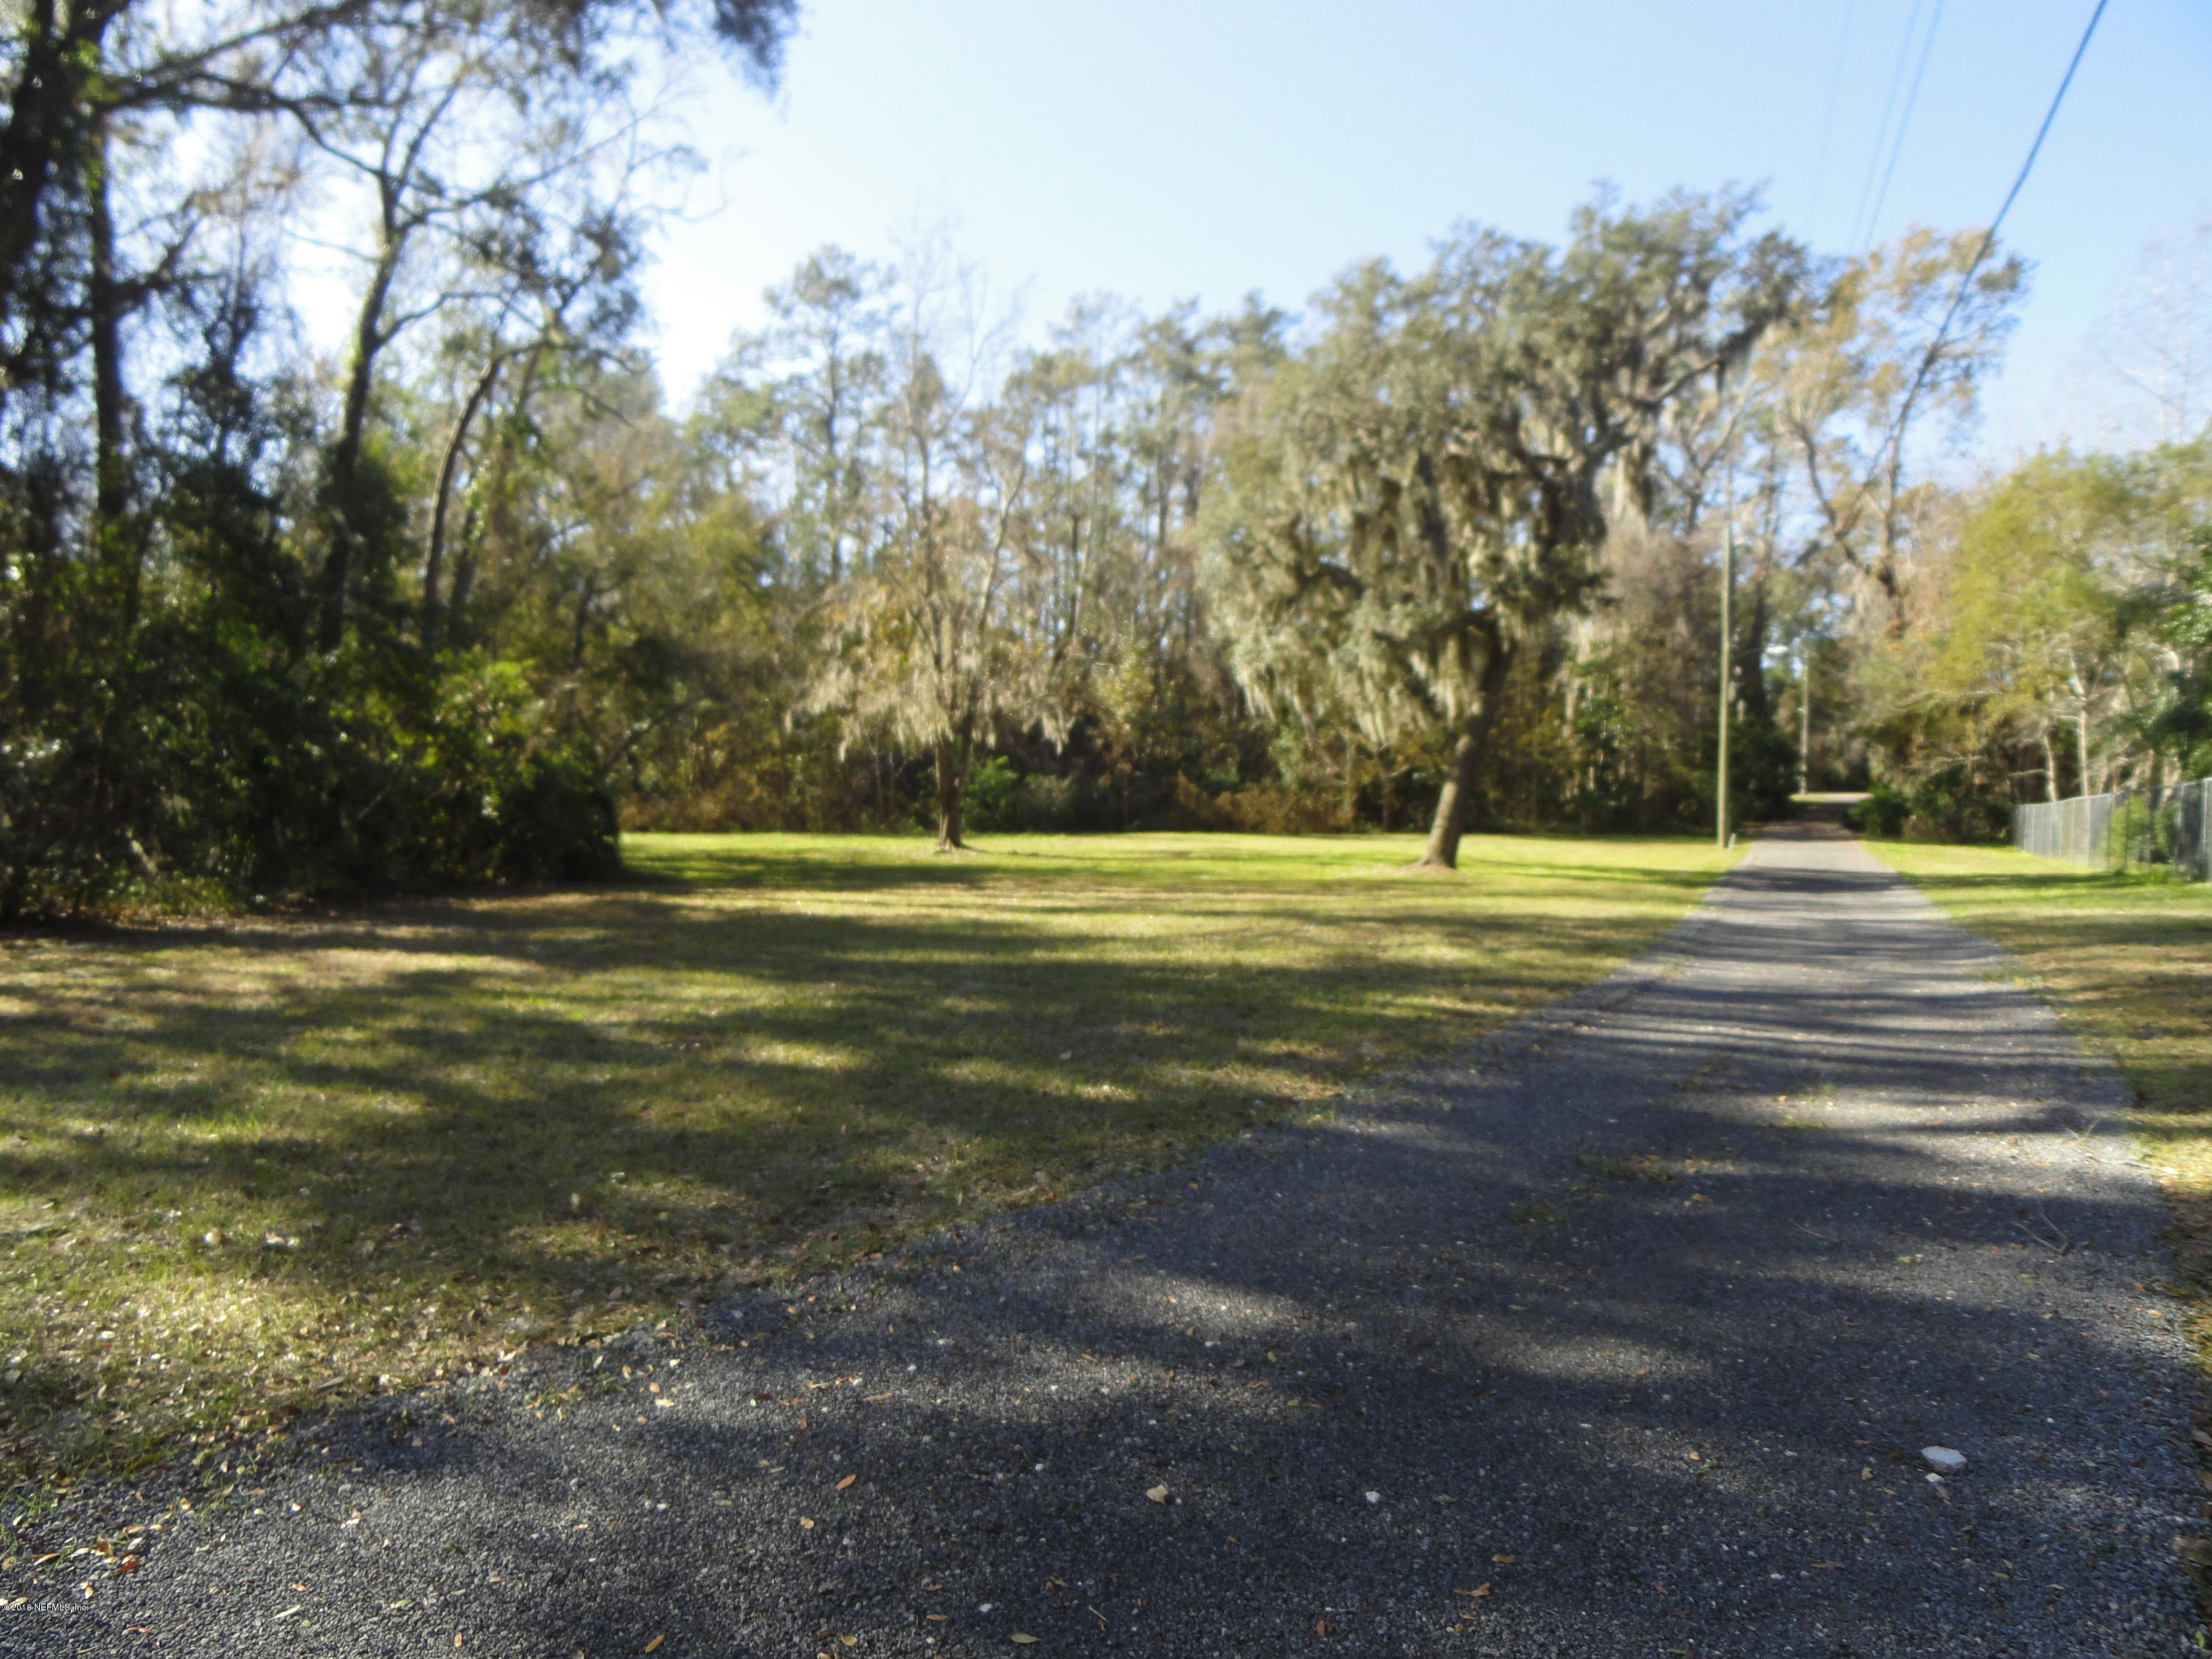 4921 ORTEGA FARMS, JACKSONVILLE, FLORIDA 32210, 4 Bedrooms Bedrooms, ,3 BathroomsBathrooms,Residential - single family,For sale,ORTEGA FARMS,974079